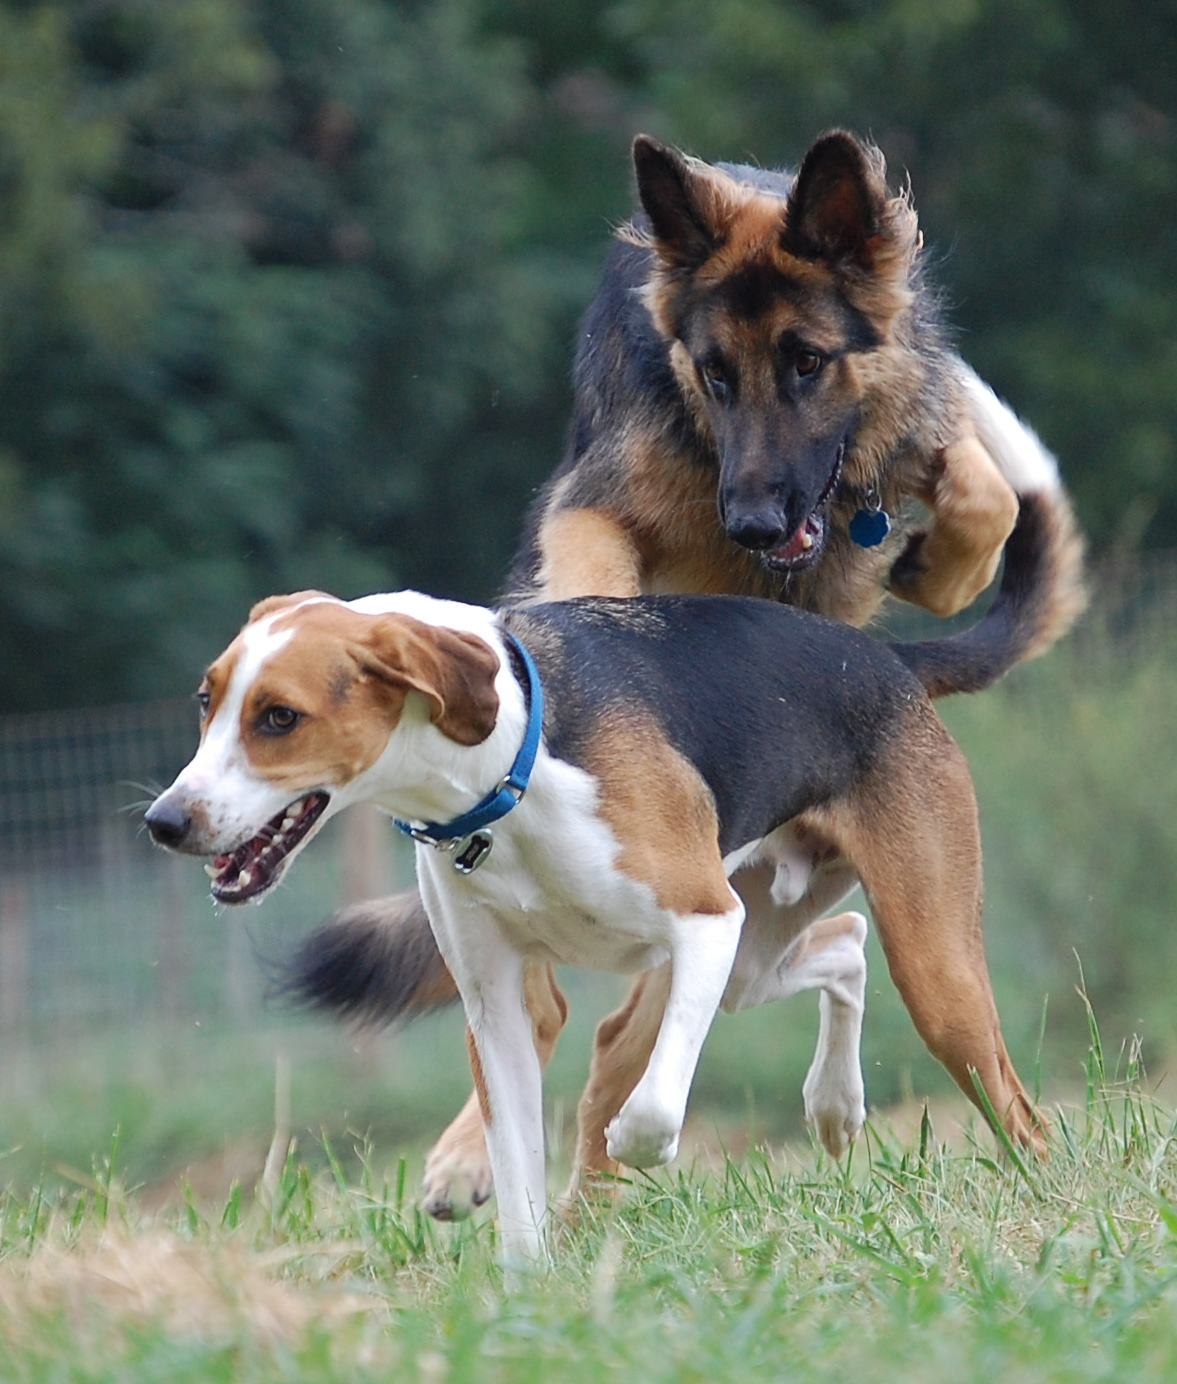 Dog With High Prey Drive And Cat